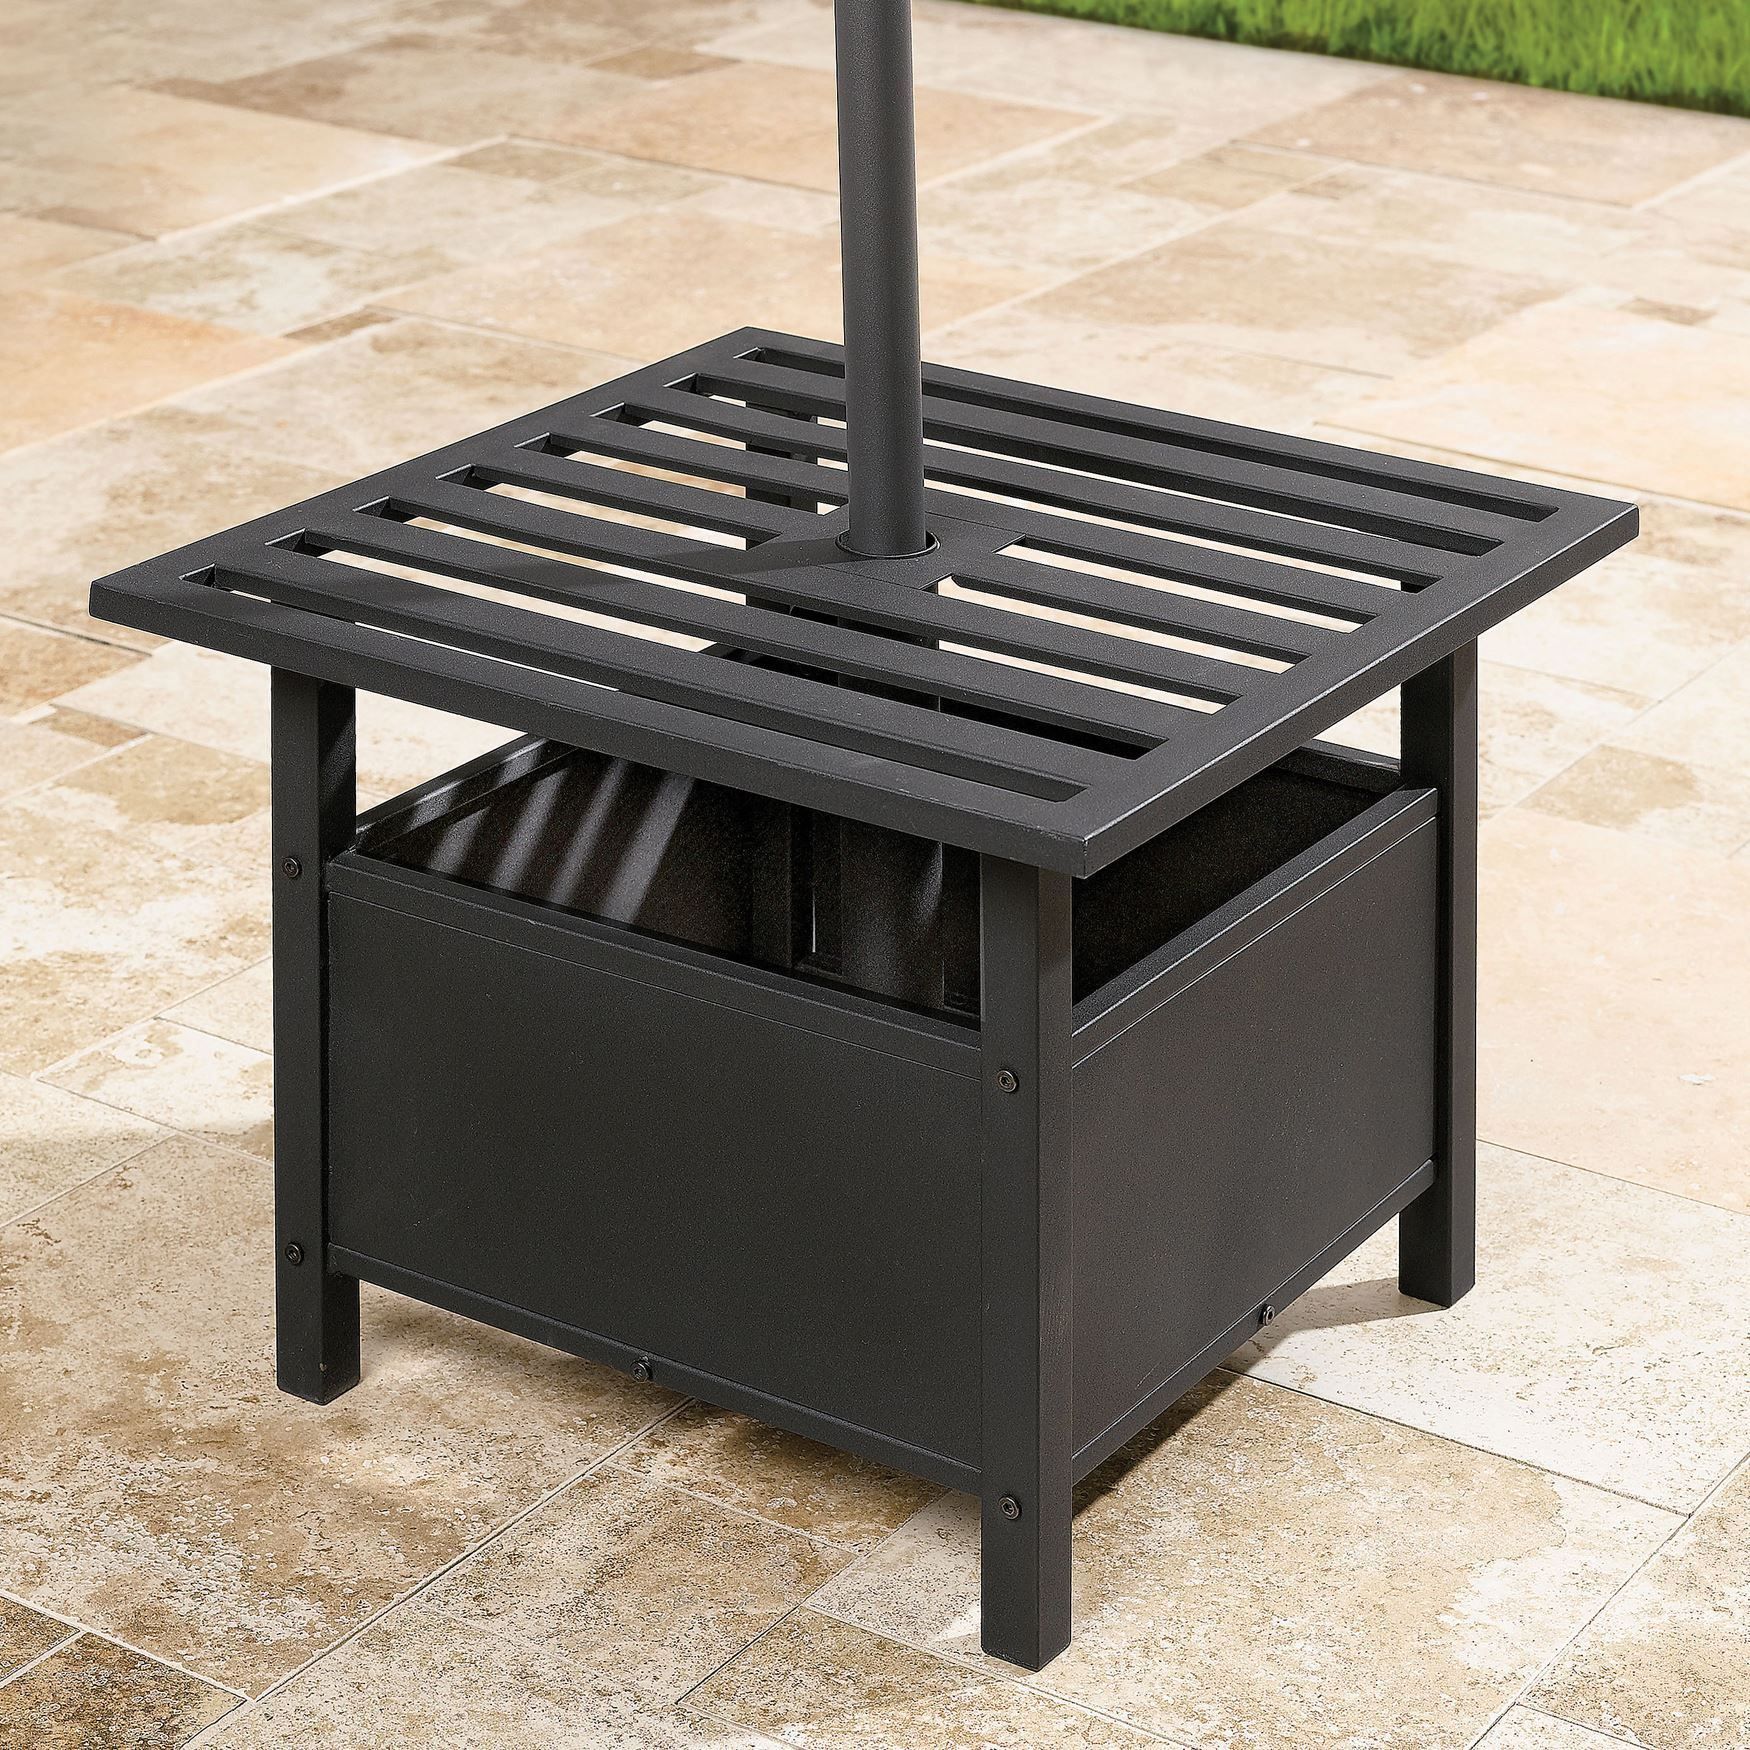 160 Square And Sturdy Our Umbrella Stand Side Table Is Perfect For Holding Drinks And Snacks Patio Table Umbrella Patio Umbrella Stand Patio Umbrella Bases